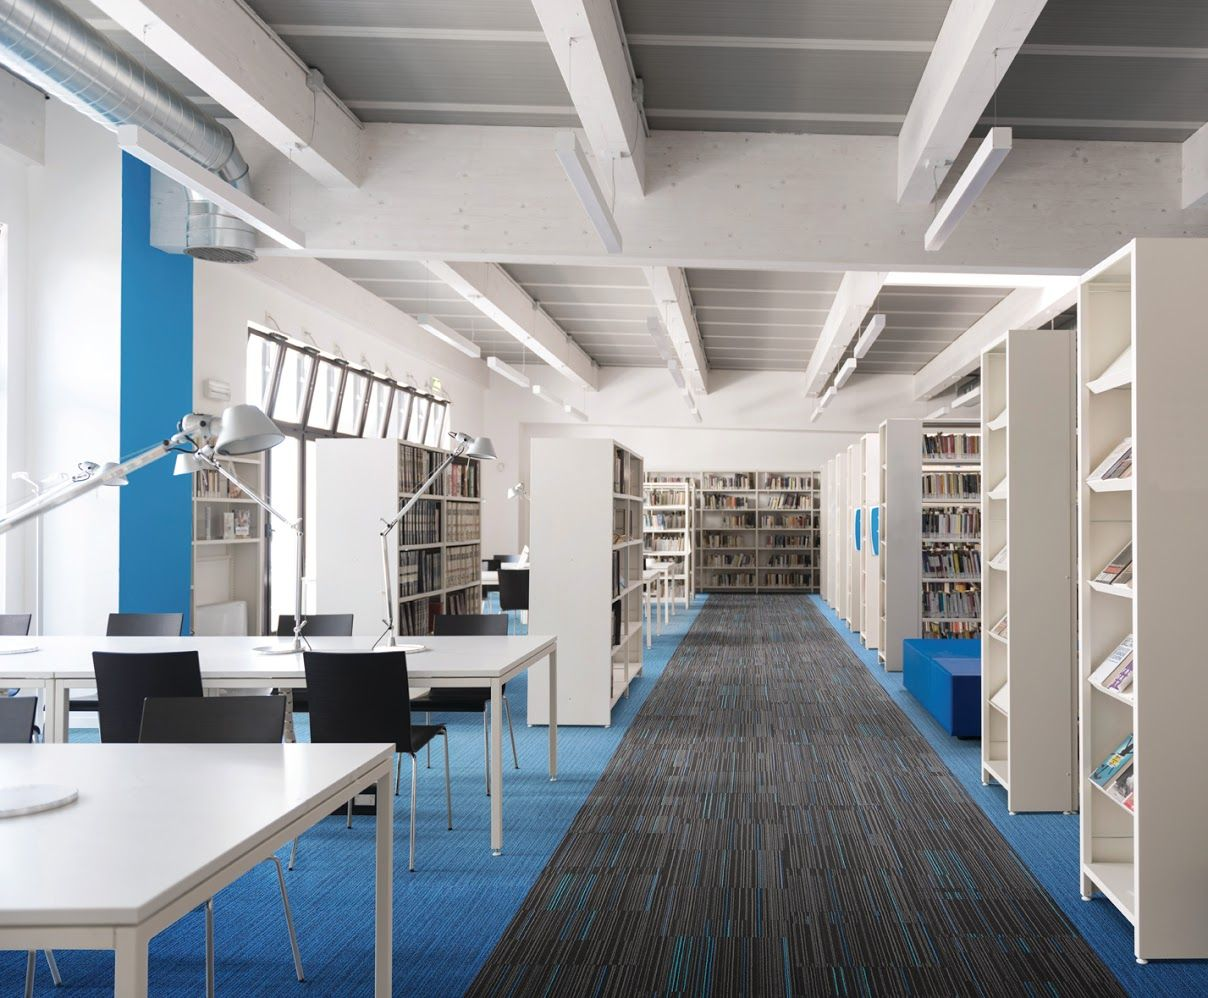 Floor Designs For Reading Spaces And Libraries This Blue Carpet